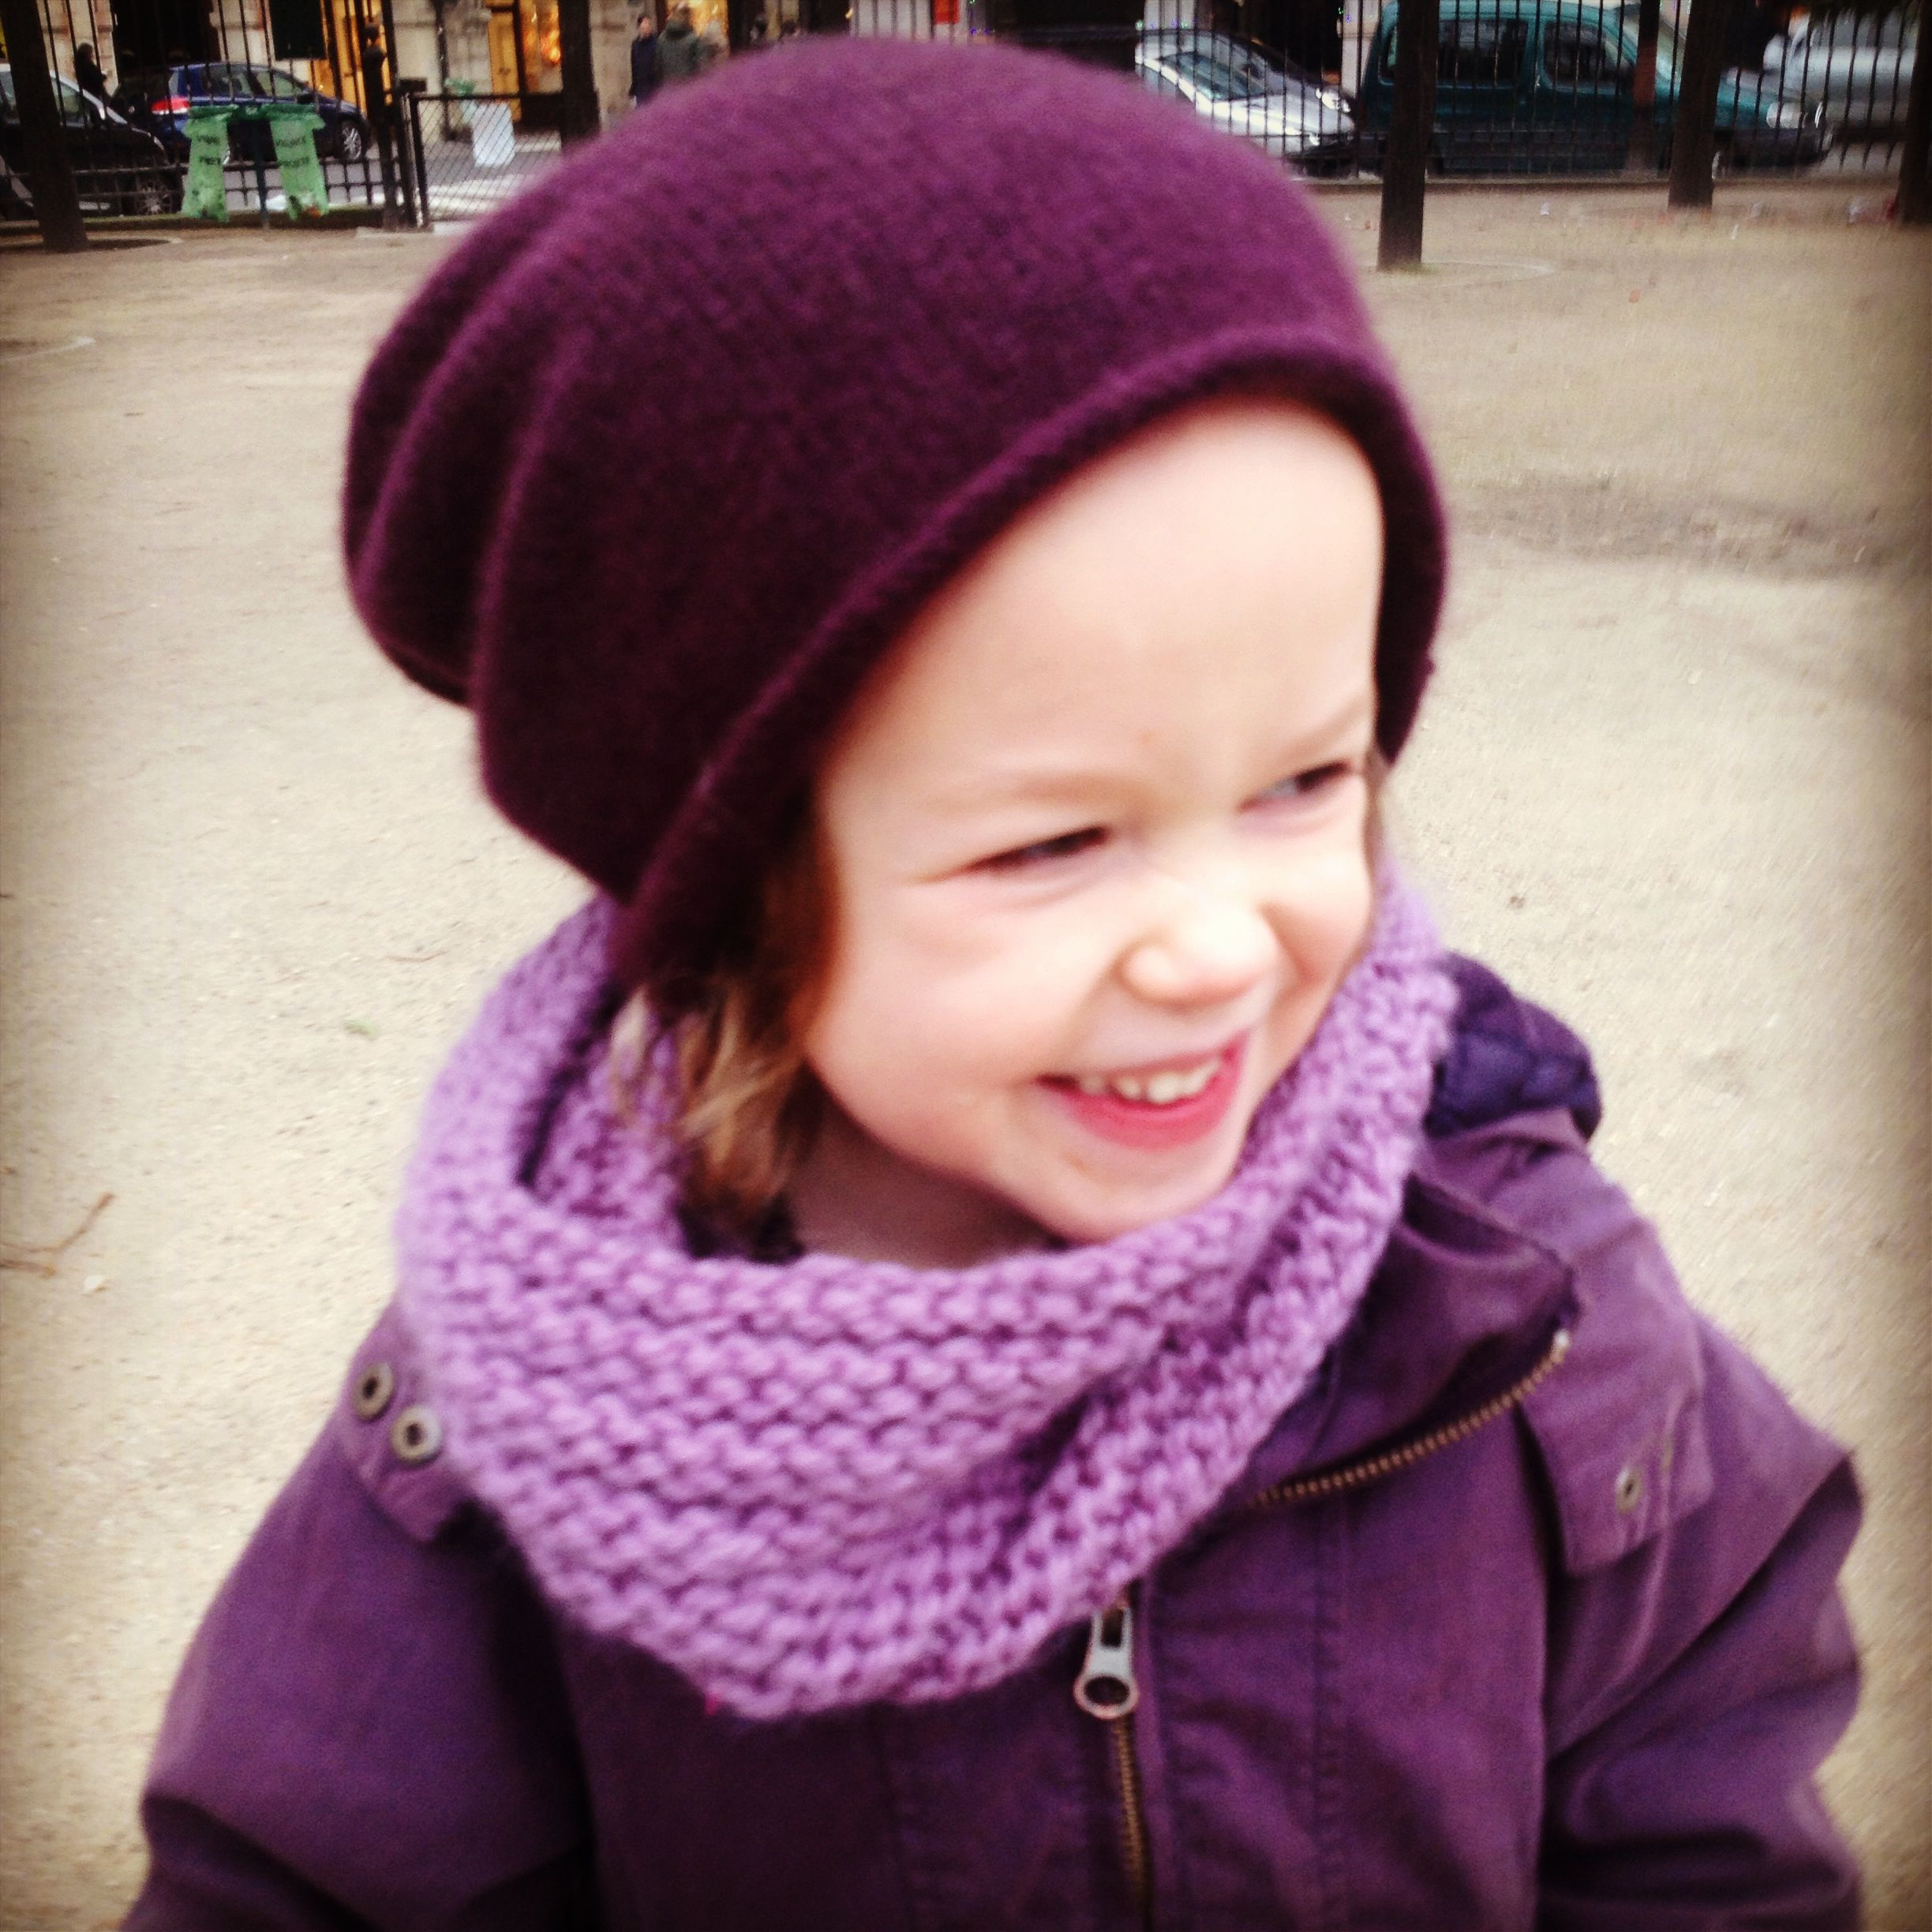 Knitted Snood Pattern Free : How to knit a snood!   Babyccino Kids: Daily tips, Childrens products, C...